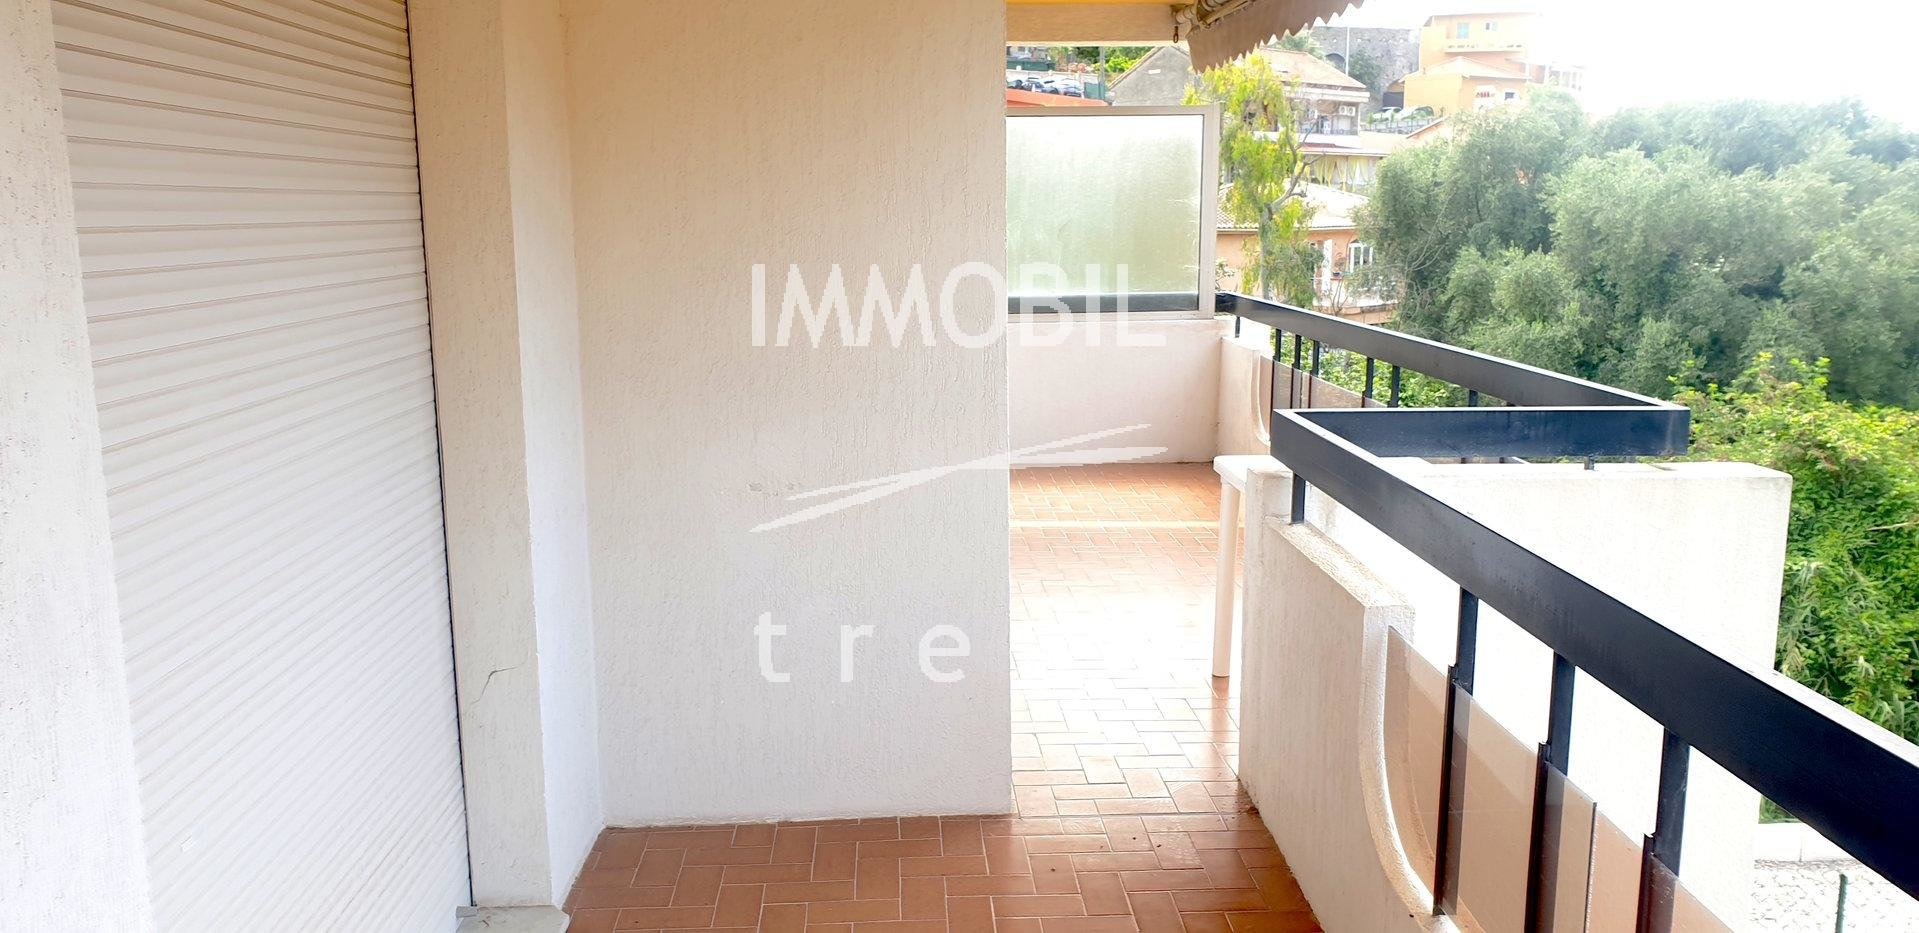 EXCLUSIVITE ROQUEBRUNE CAP MARTIN APPARTEMENT 3 PIECES AVEC BALCON PARKING ET CAVE